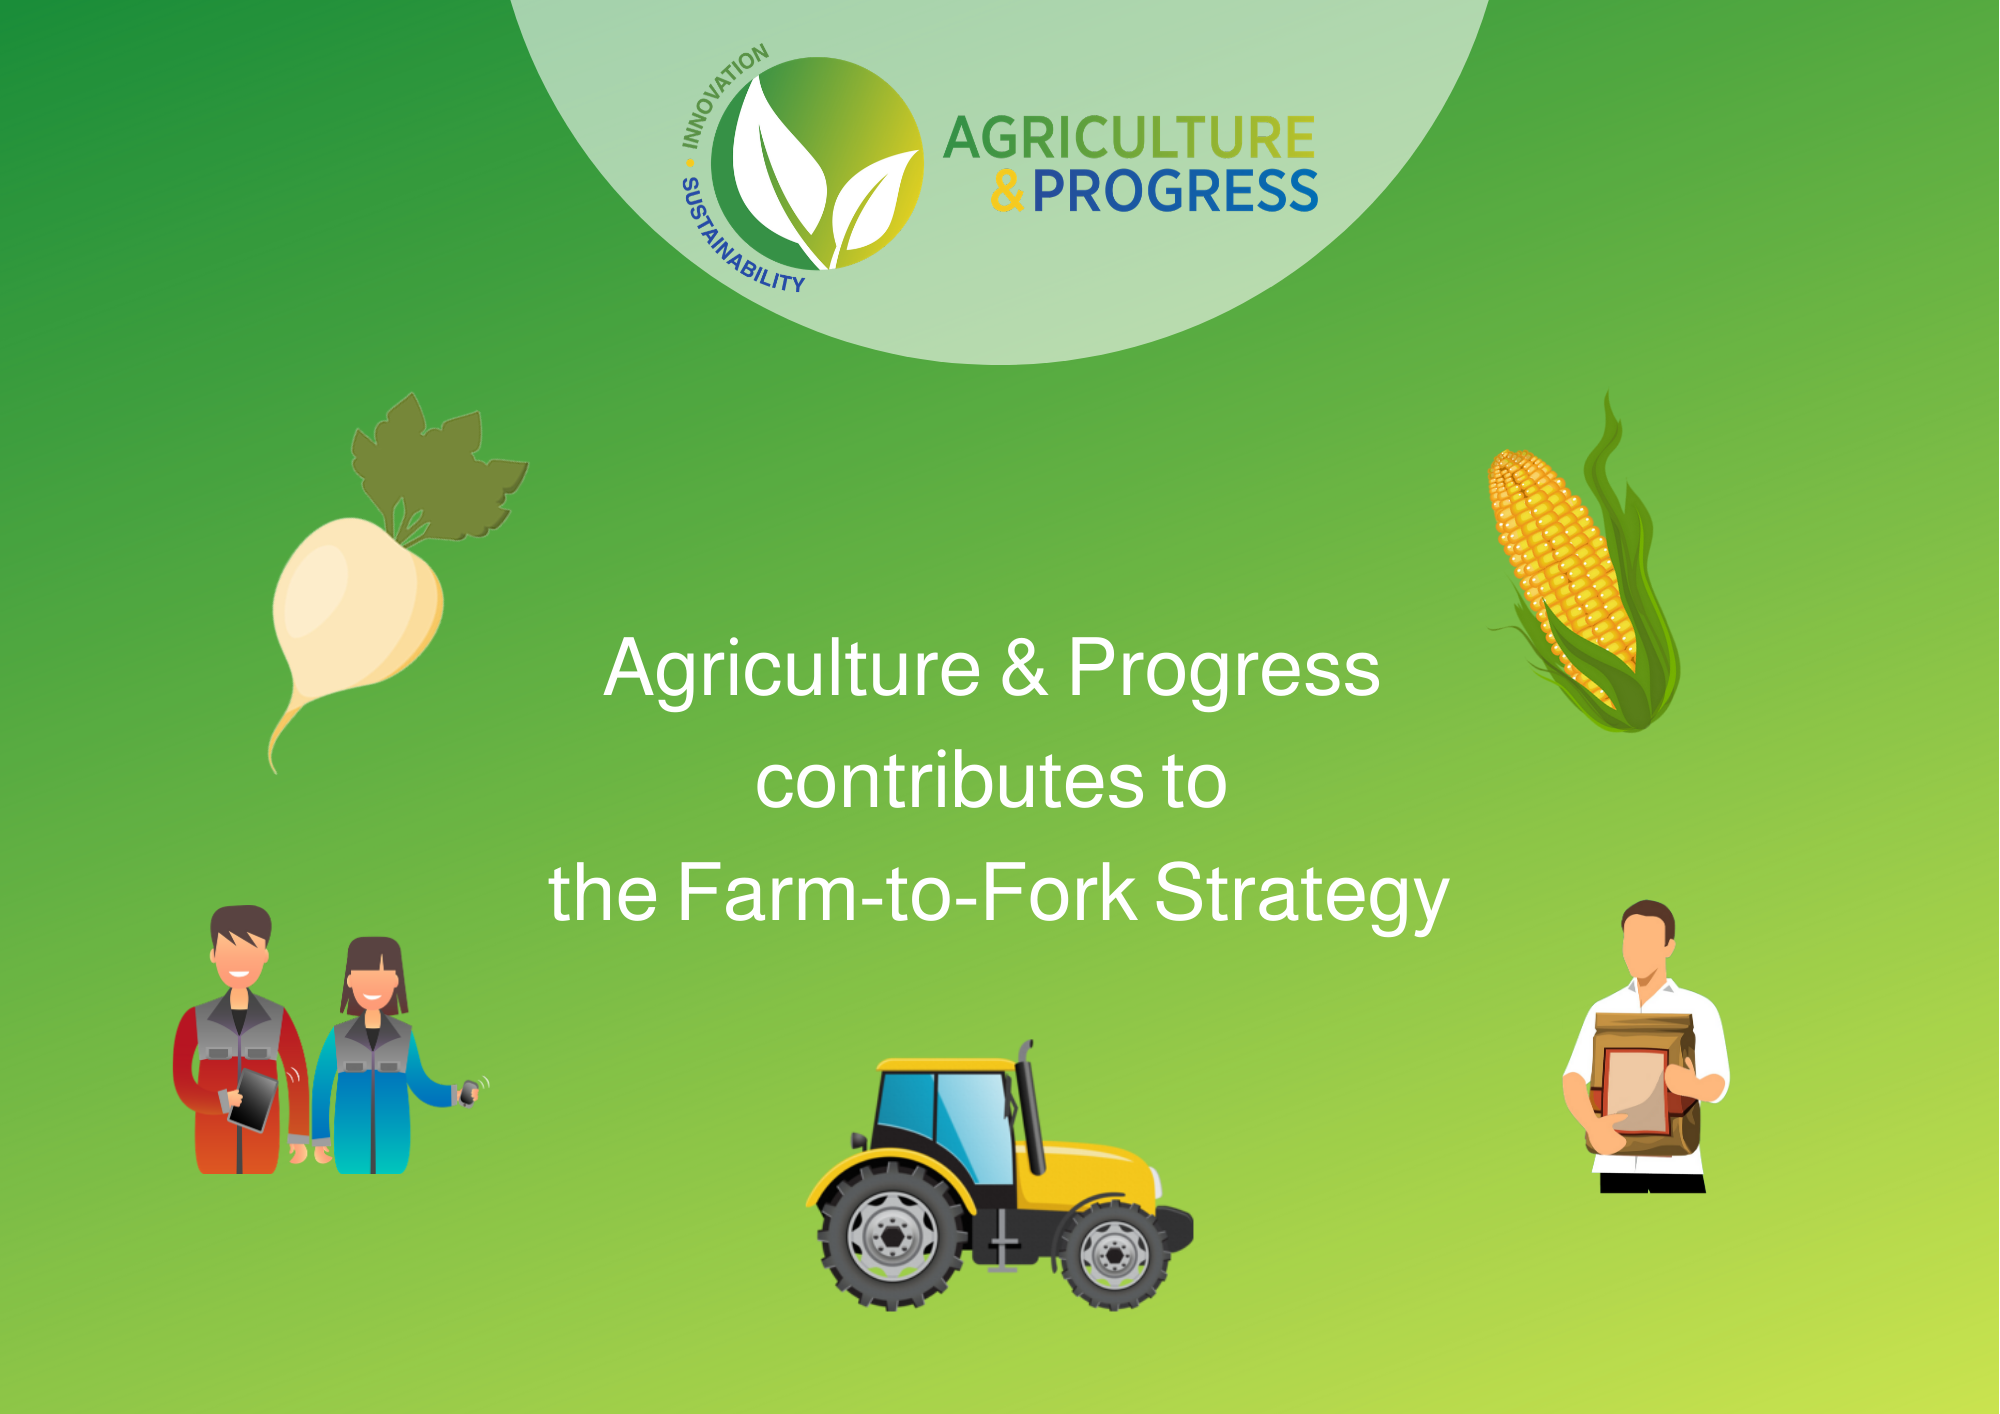 Illustration, logo Agriculture & Progress with cartoon of a sugar beet, a maize cob, two farmers, a tractor and a consummer all to be considered in the Farm to Fork Strategy